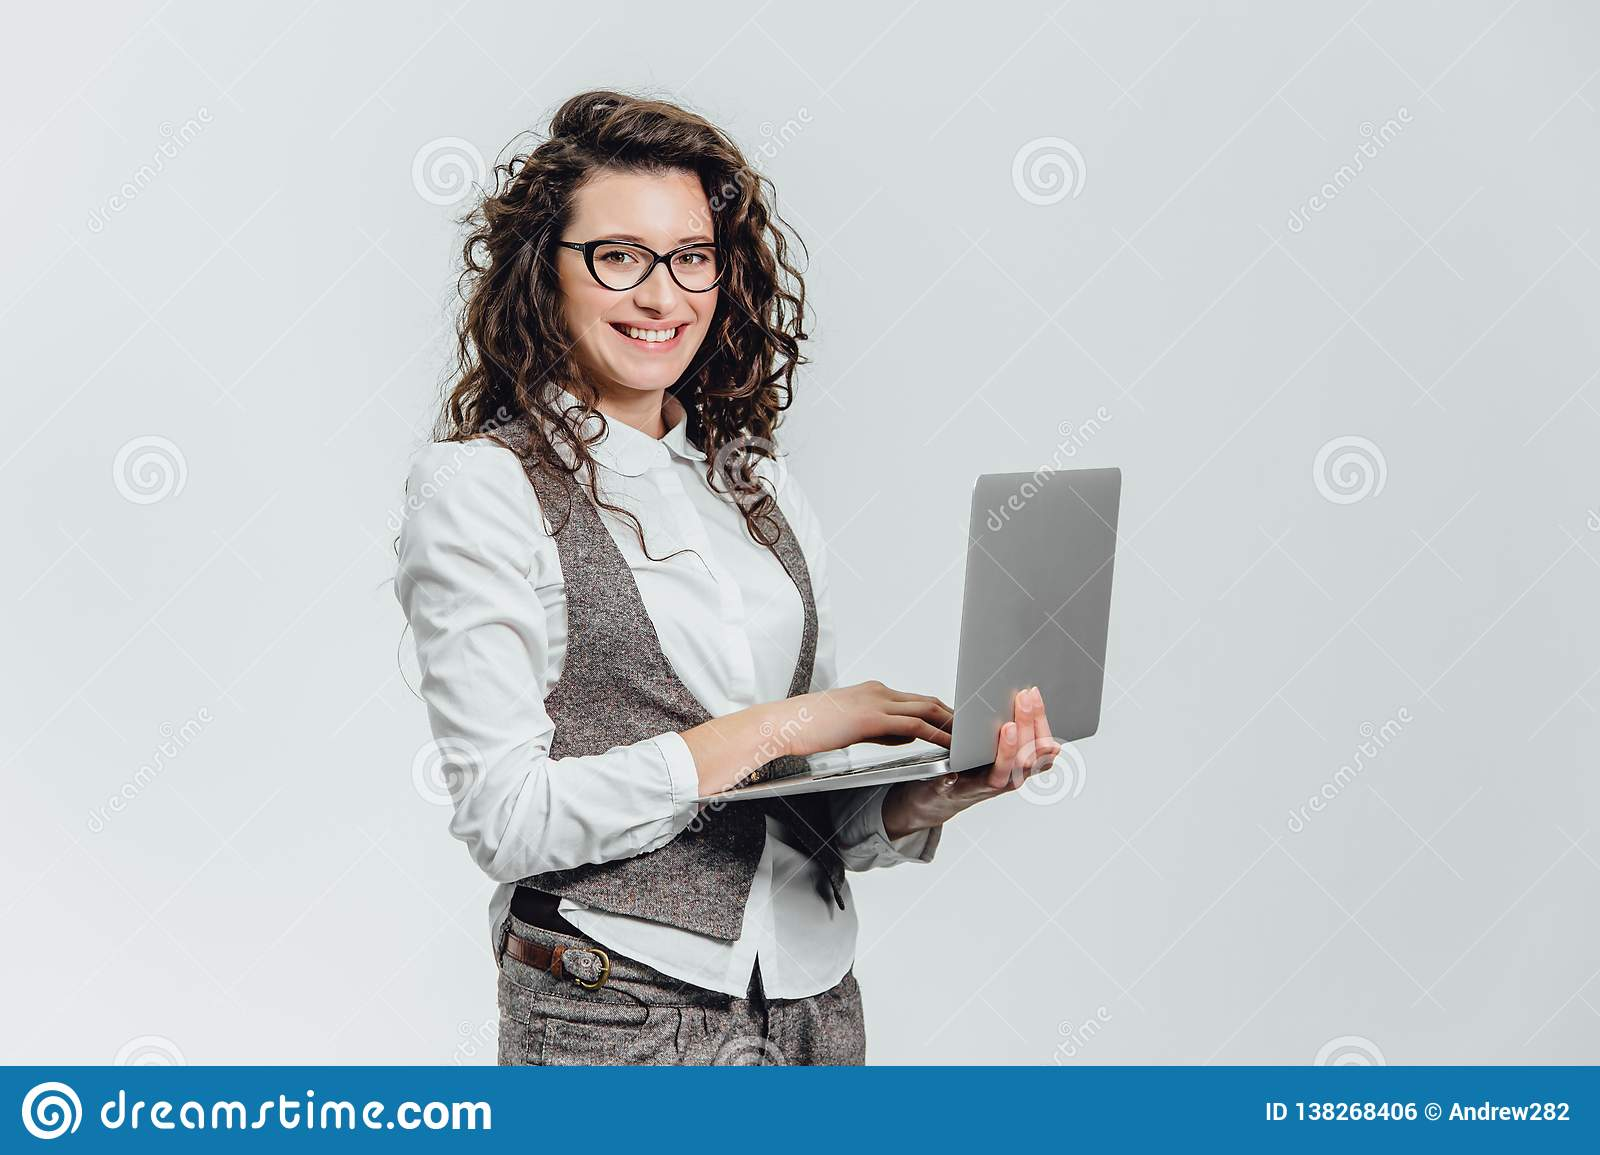 BBeautiful young girl smiles. Works on a laptop in glasses and a white shirt